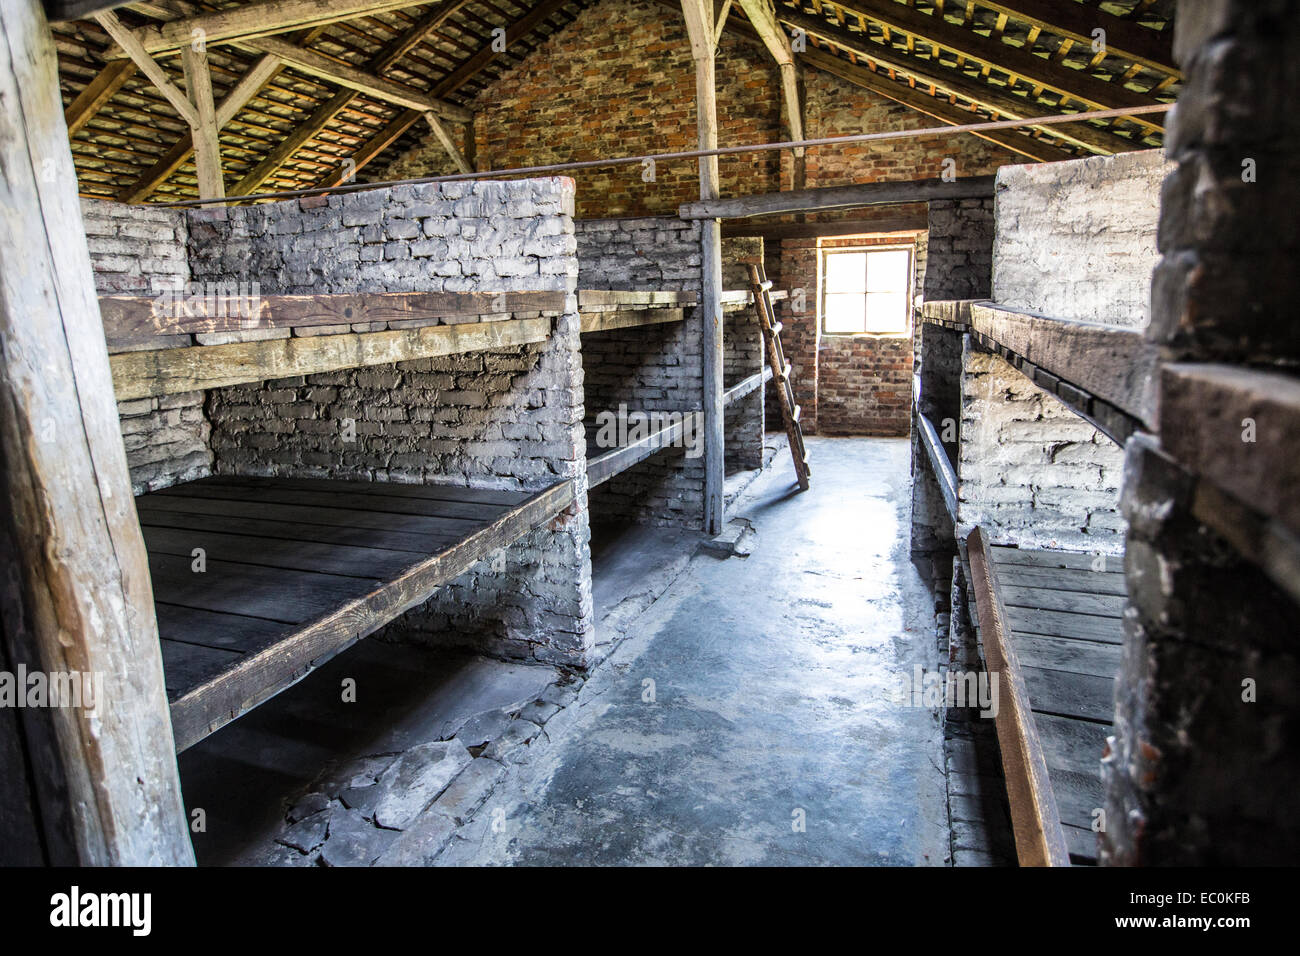 Prisoner bunks in Auschwitz Birkenau Concentration Camp, Poland - Stock Image